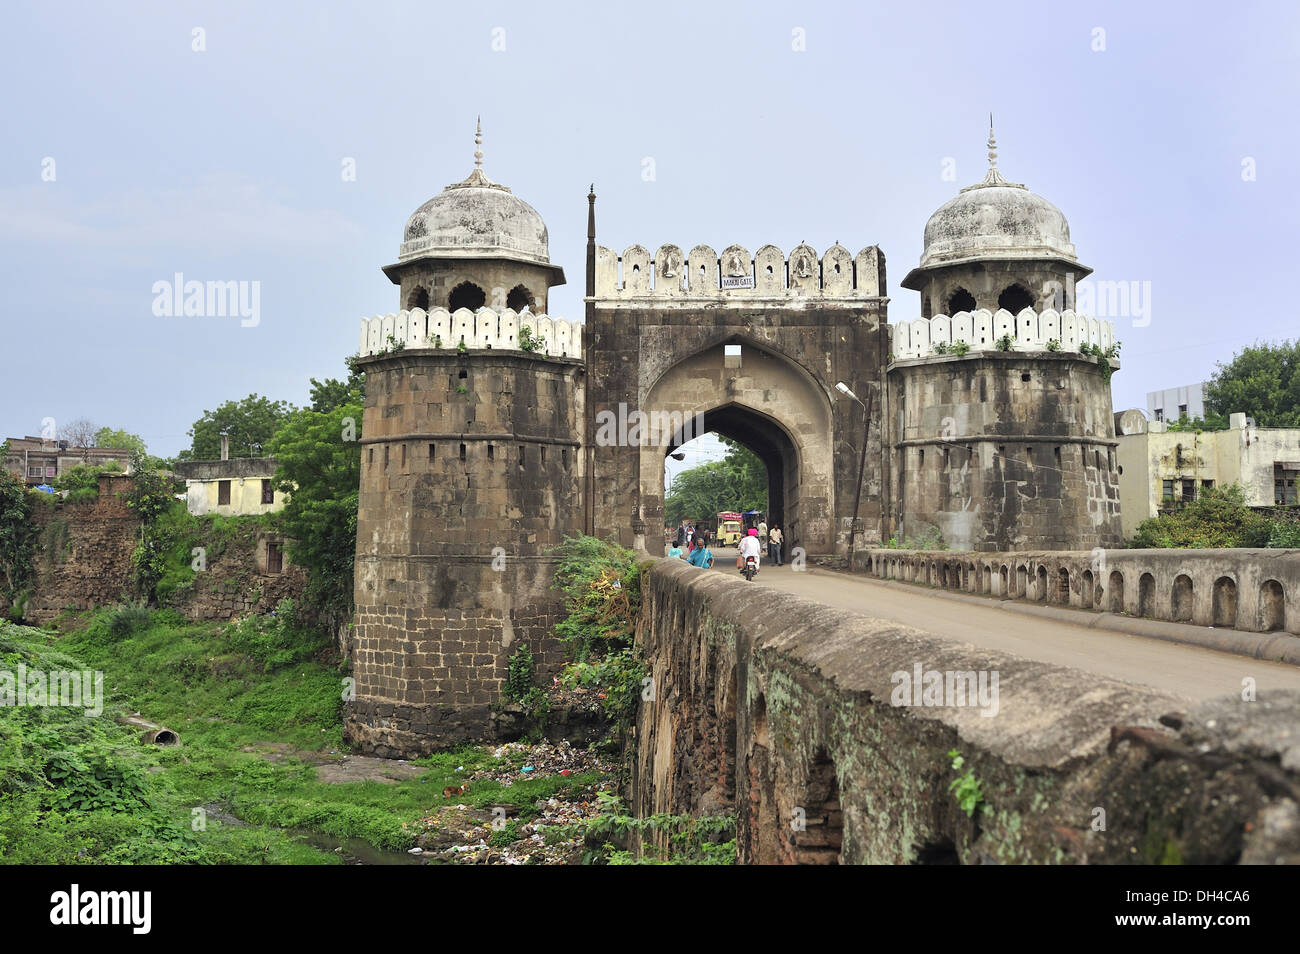 aurangabad gate stock photos aurangabad gate stock images alamy. Black Bedroom Furniture Sets. Home Design Ideas